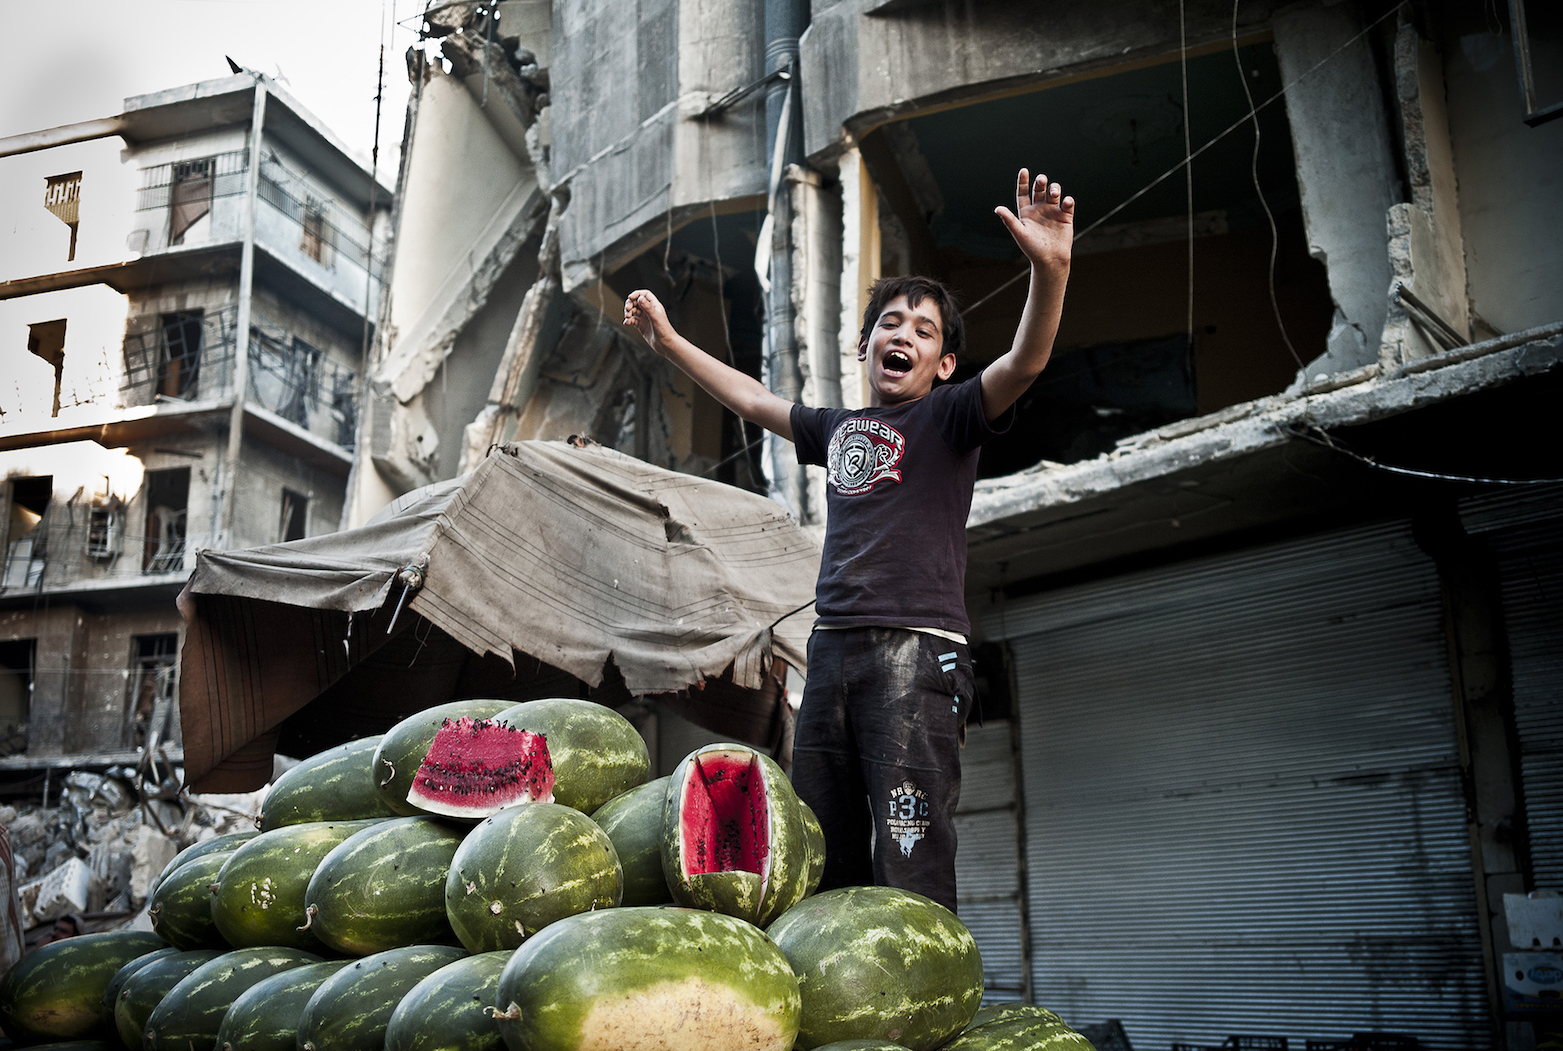 Ahmed sells watermelons during the month of Ramadan in Shaar district of Aleppo. Aleppo's markets are under constant threat of barrel bomb attacks by the regime. I returned back in 2015 to Syria during Ramandan, and the marketplace had been heavily bombarded and Ahmed had been wounded and killed. Aleppo, 2014. © Jacob Simkin